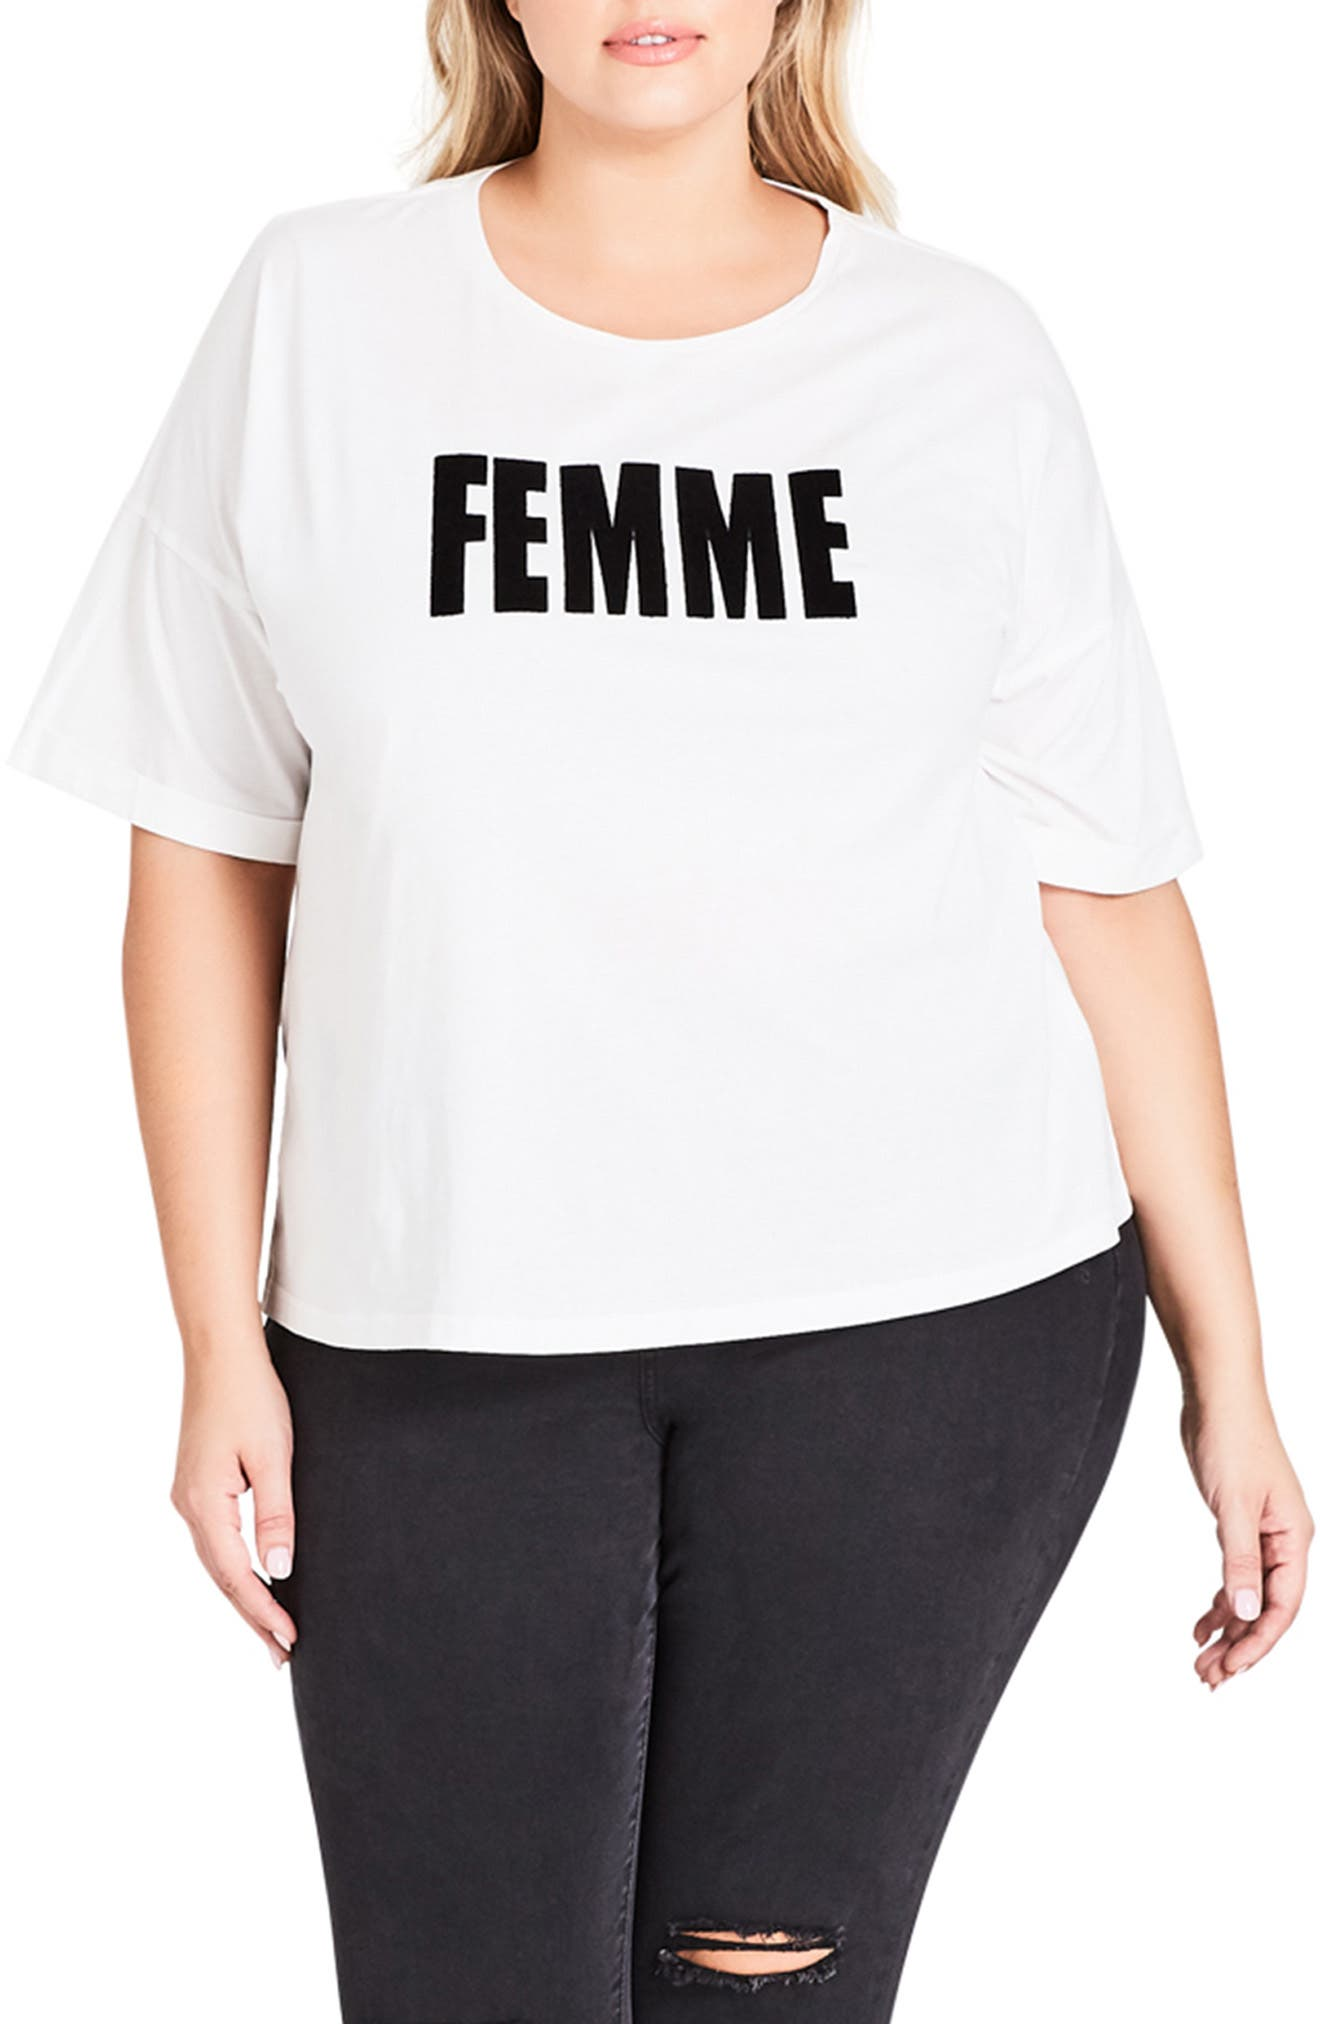 Plus Size City Chic Faux Fur Lettered Femme Tee, Ivory